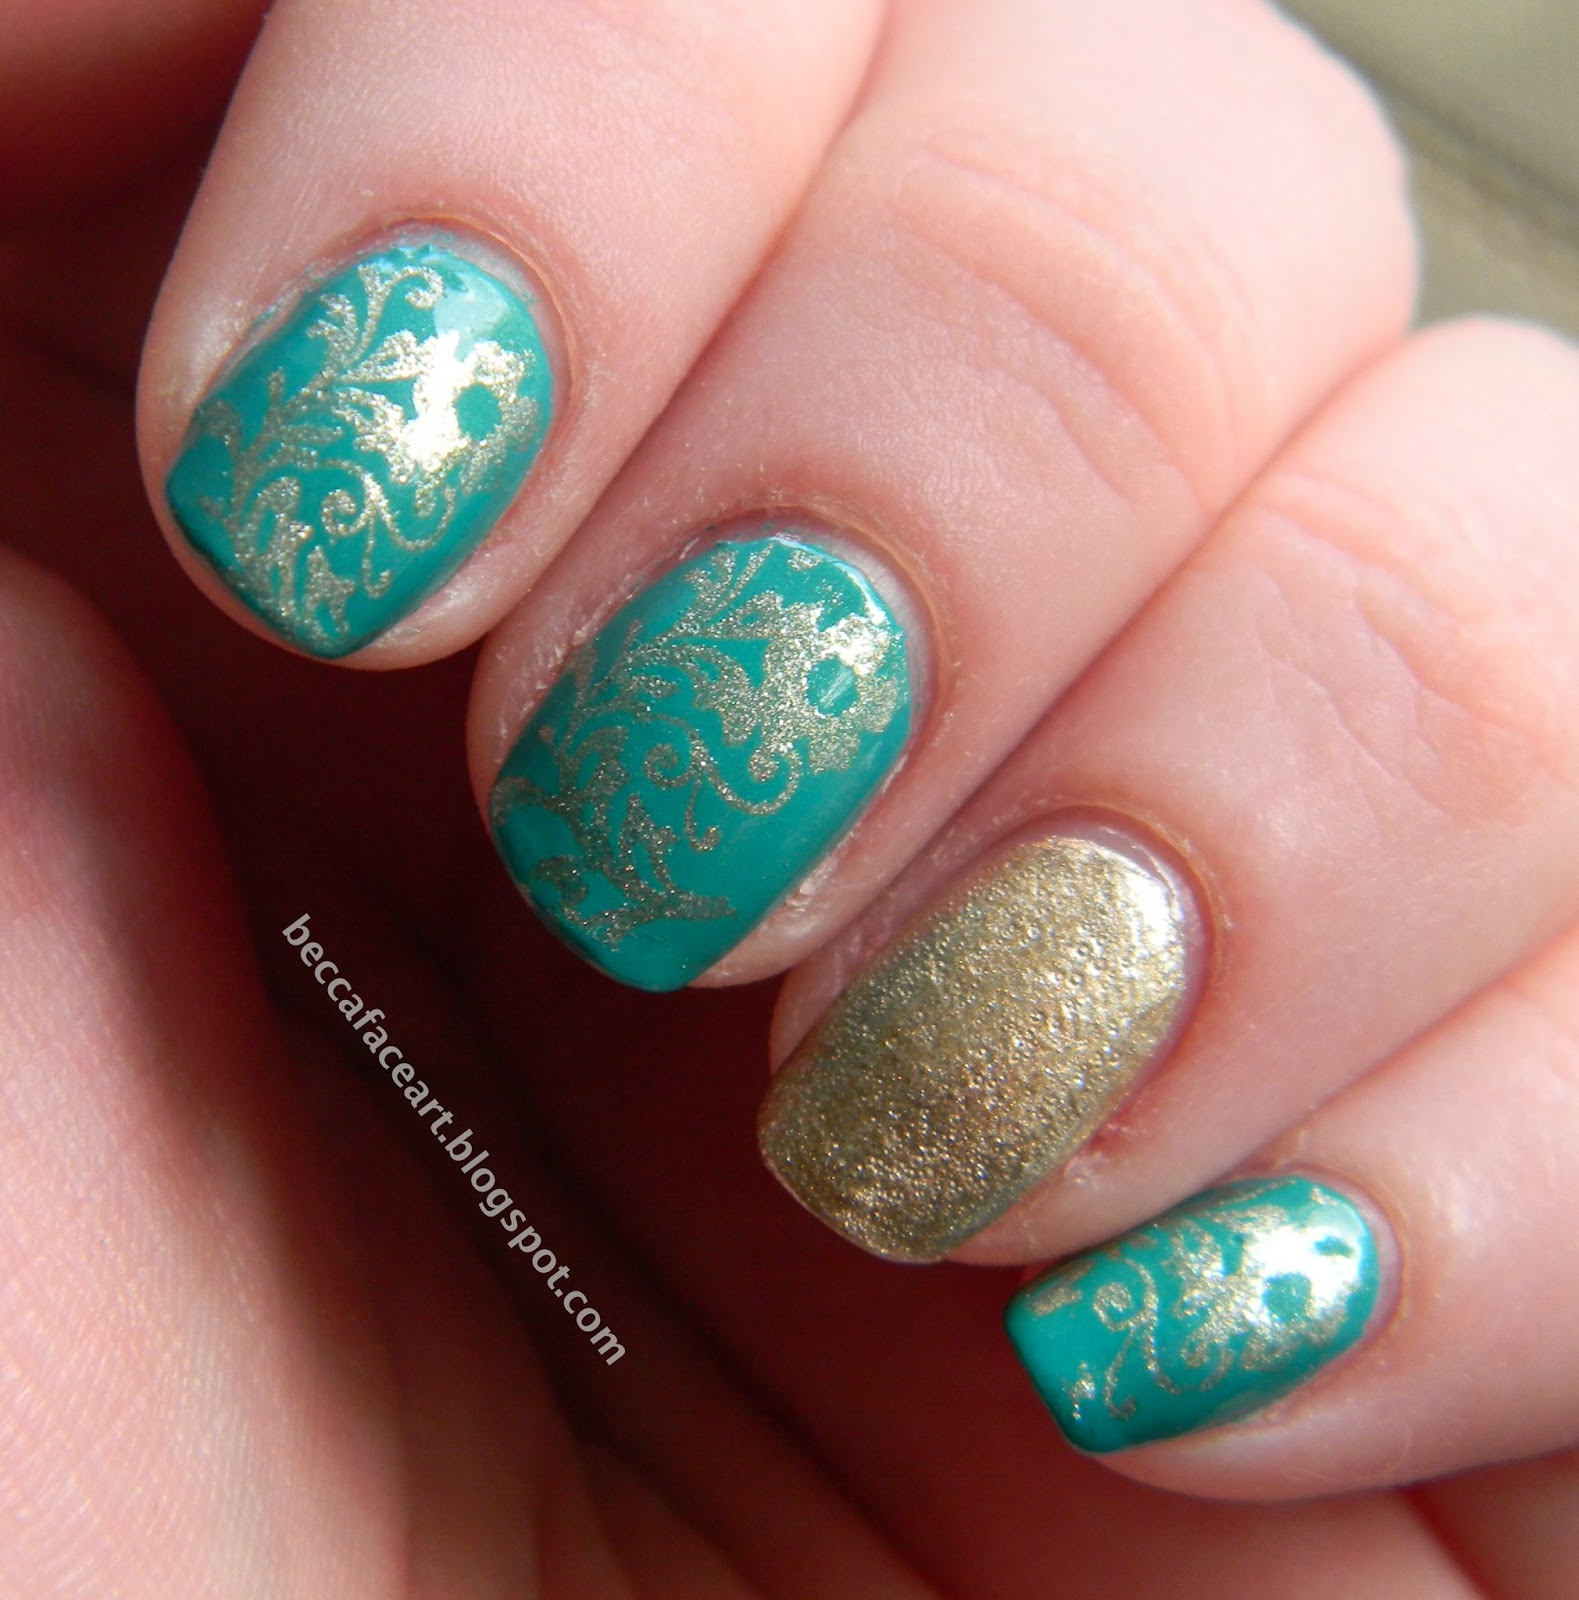 Becca Face Nail Art: Turquoise And Gold Flower Nails